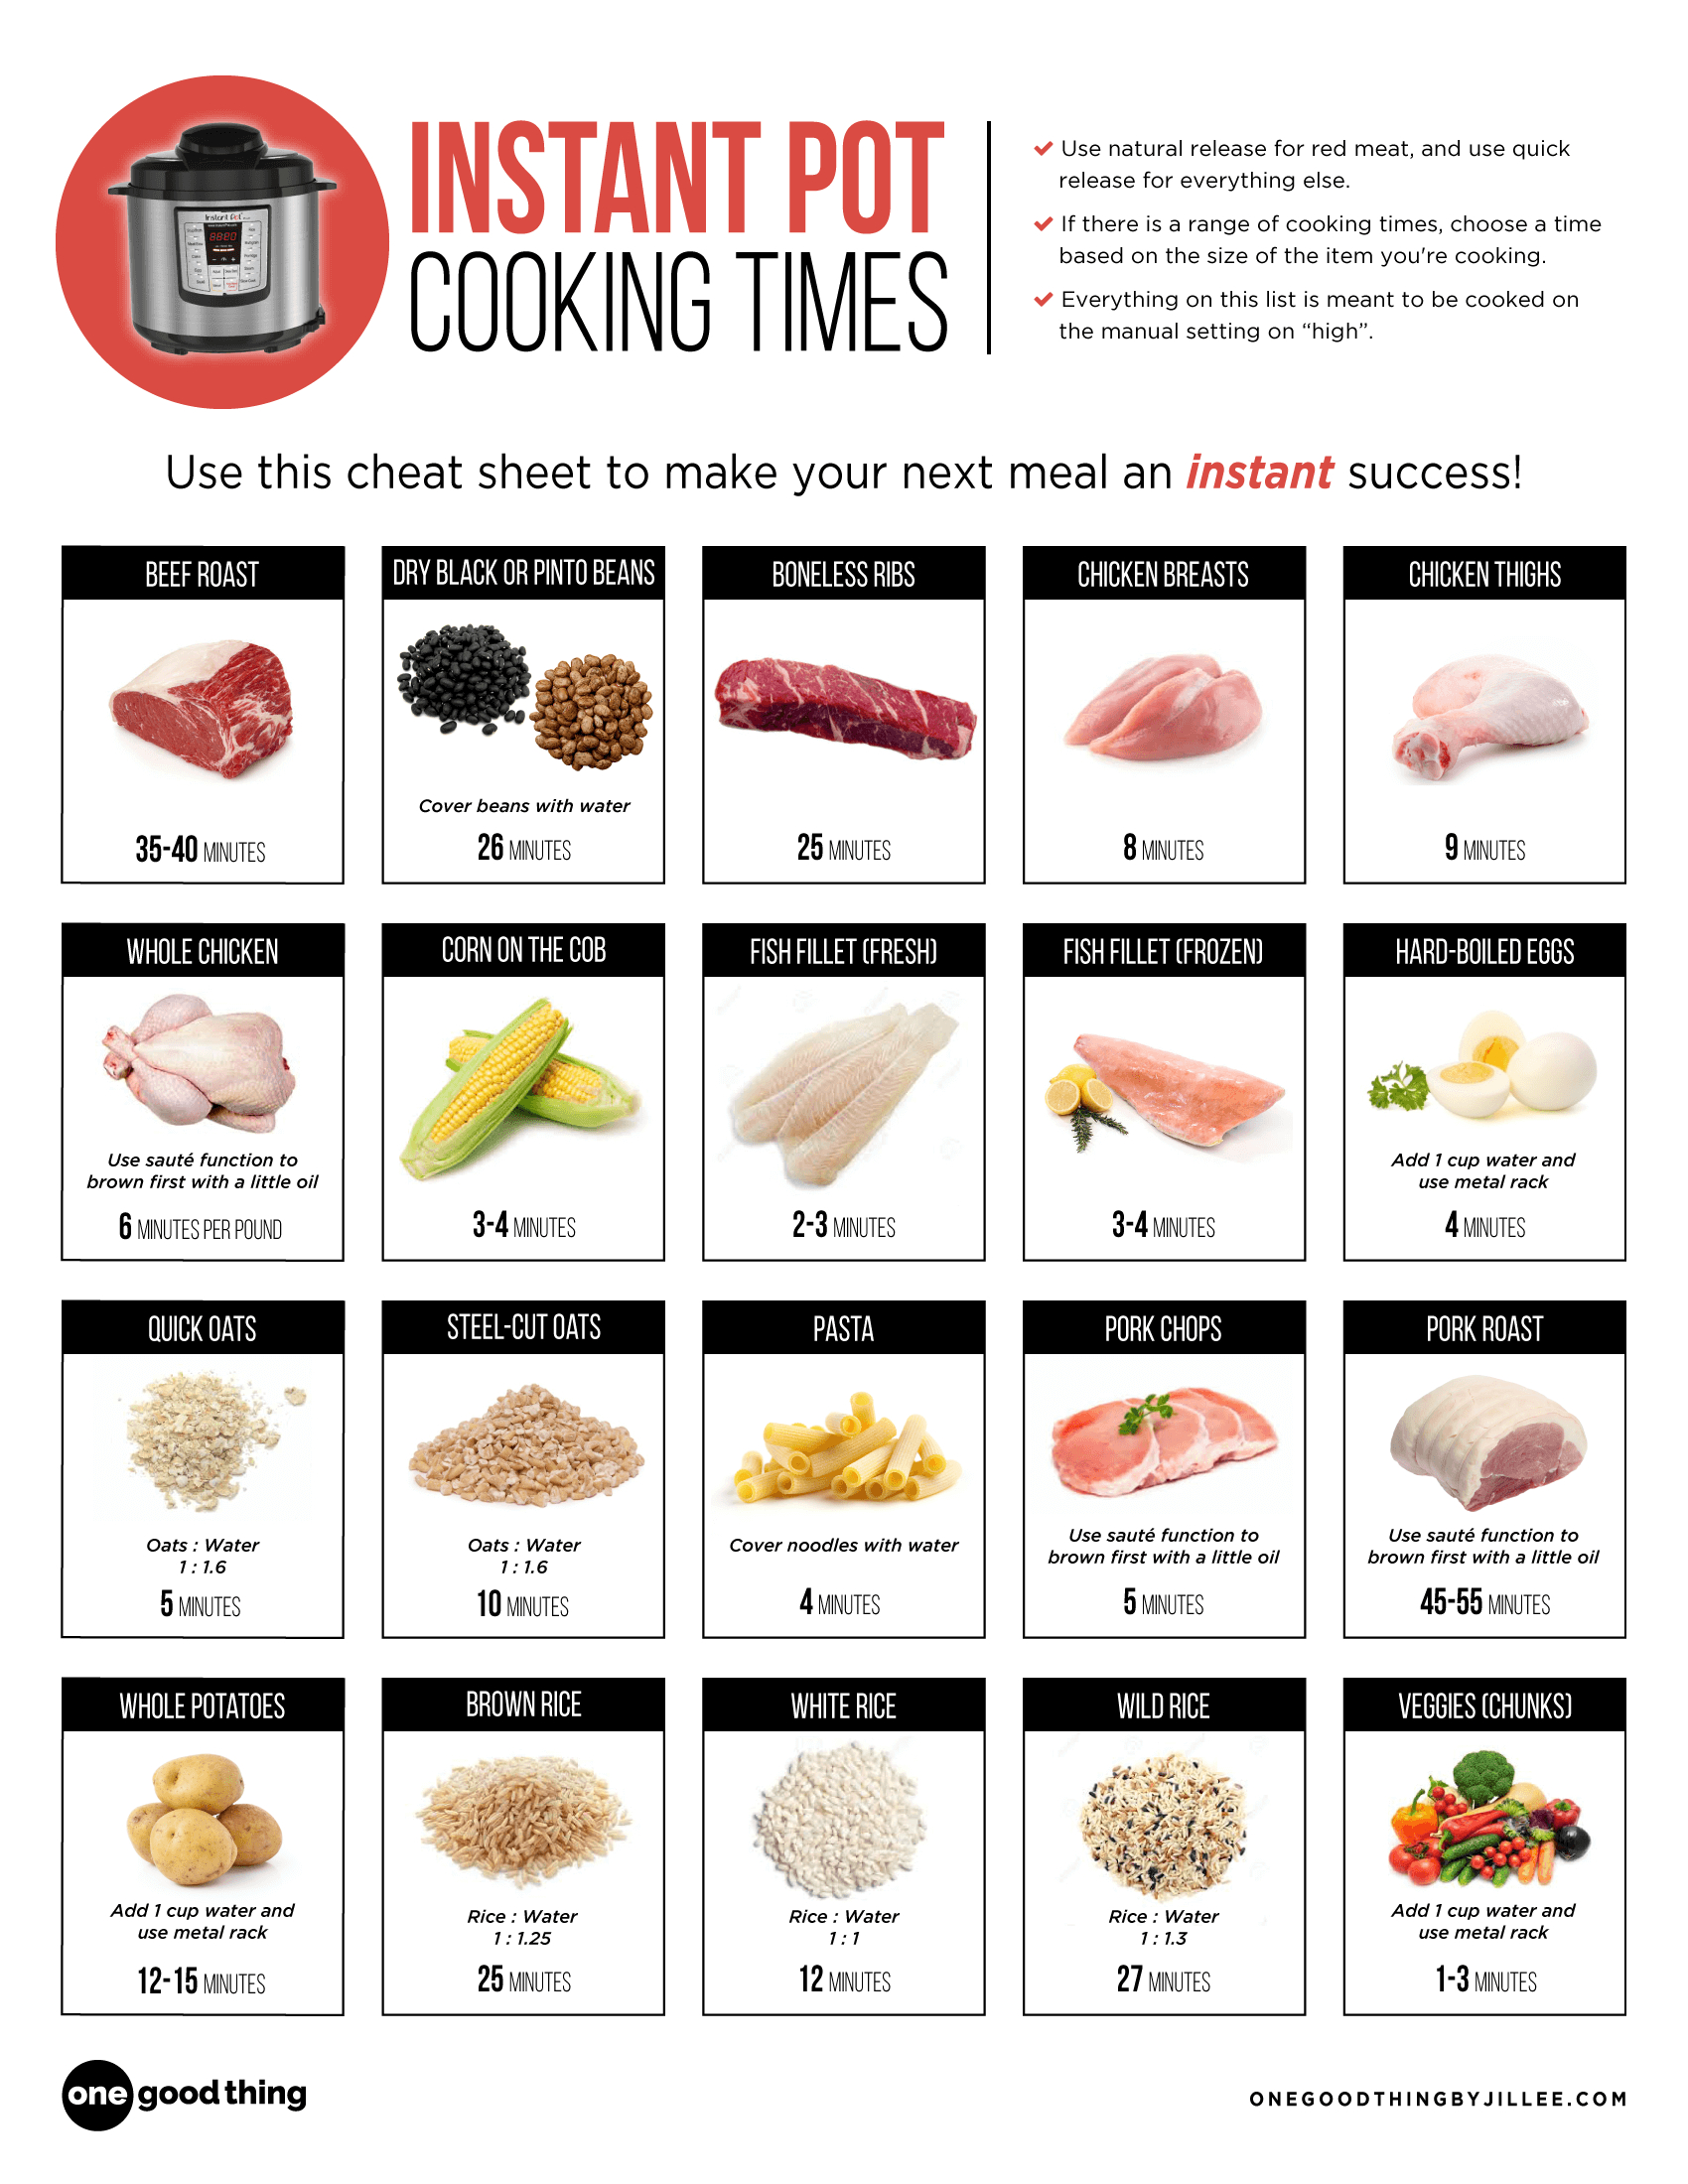 The Most Useful Instant Pot Cheat Sheet On The Web Just Got Better - Free Printable Instant Pot Cheat Sheet